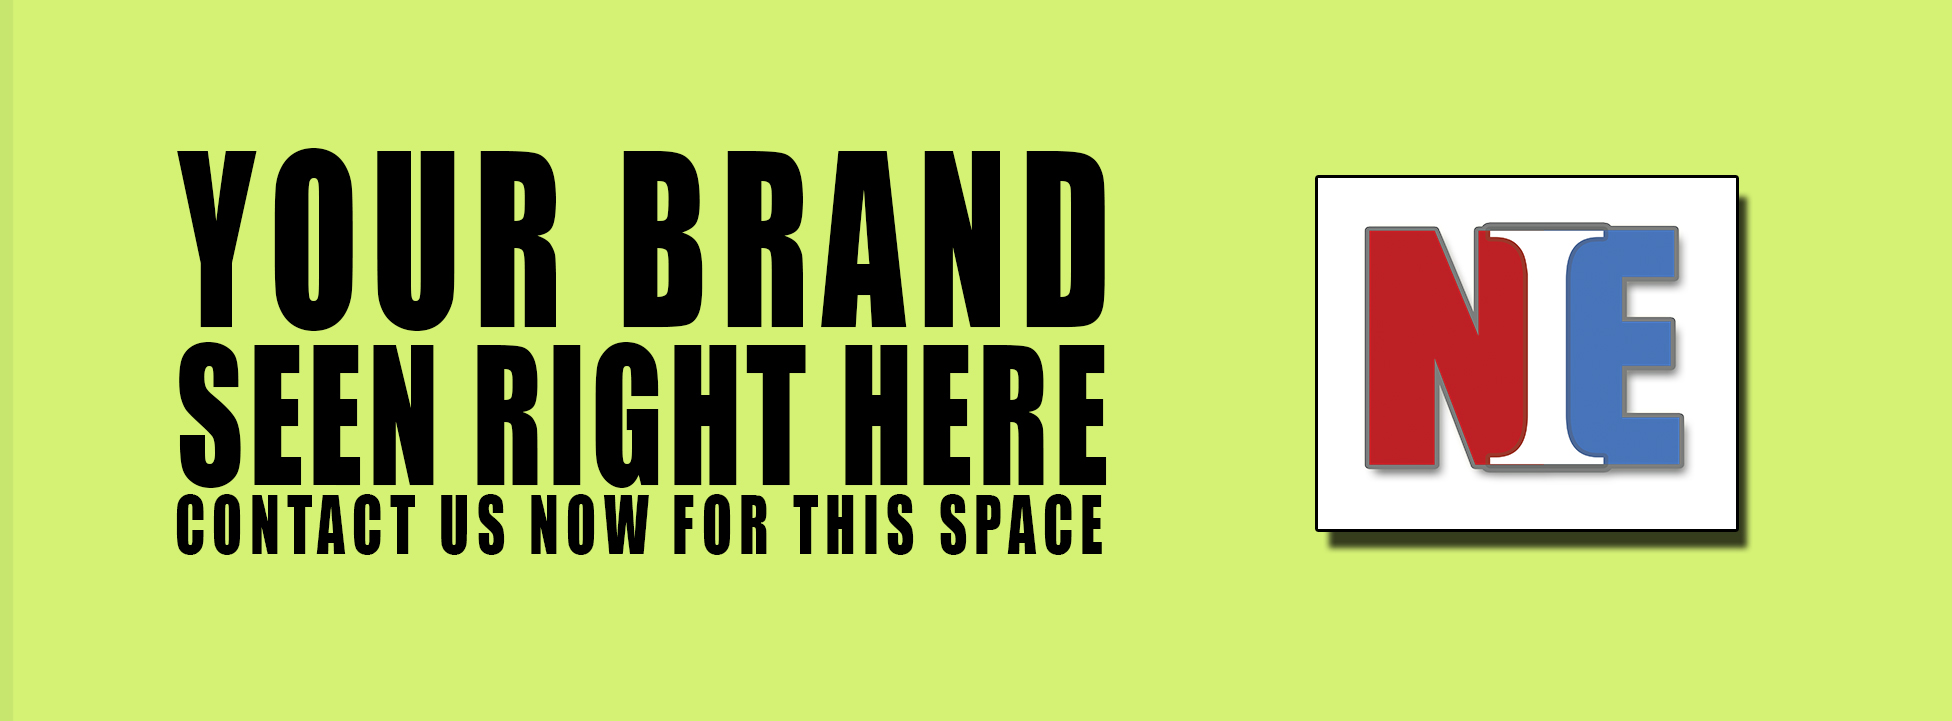 YOUR BRAND SEEN RIGHT HERE banner.jpg